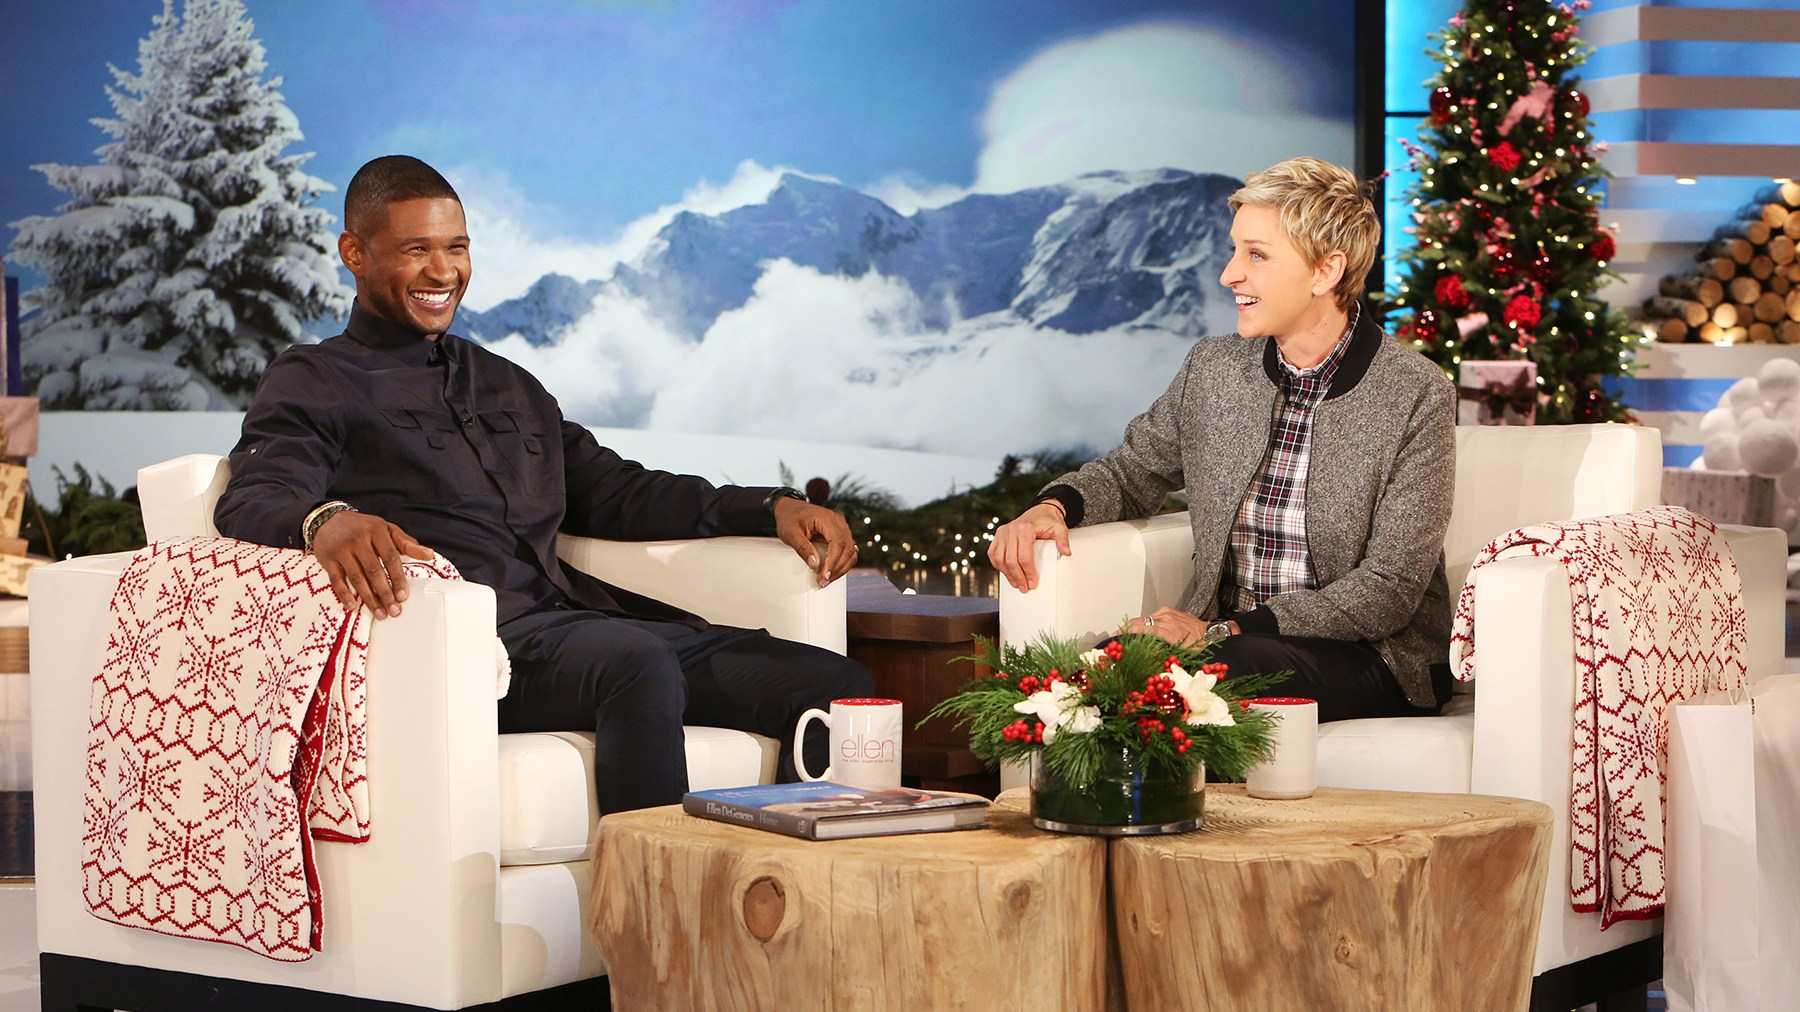 Usher on The Ellen DeGeneres Show